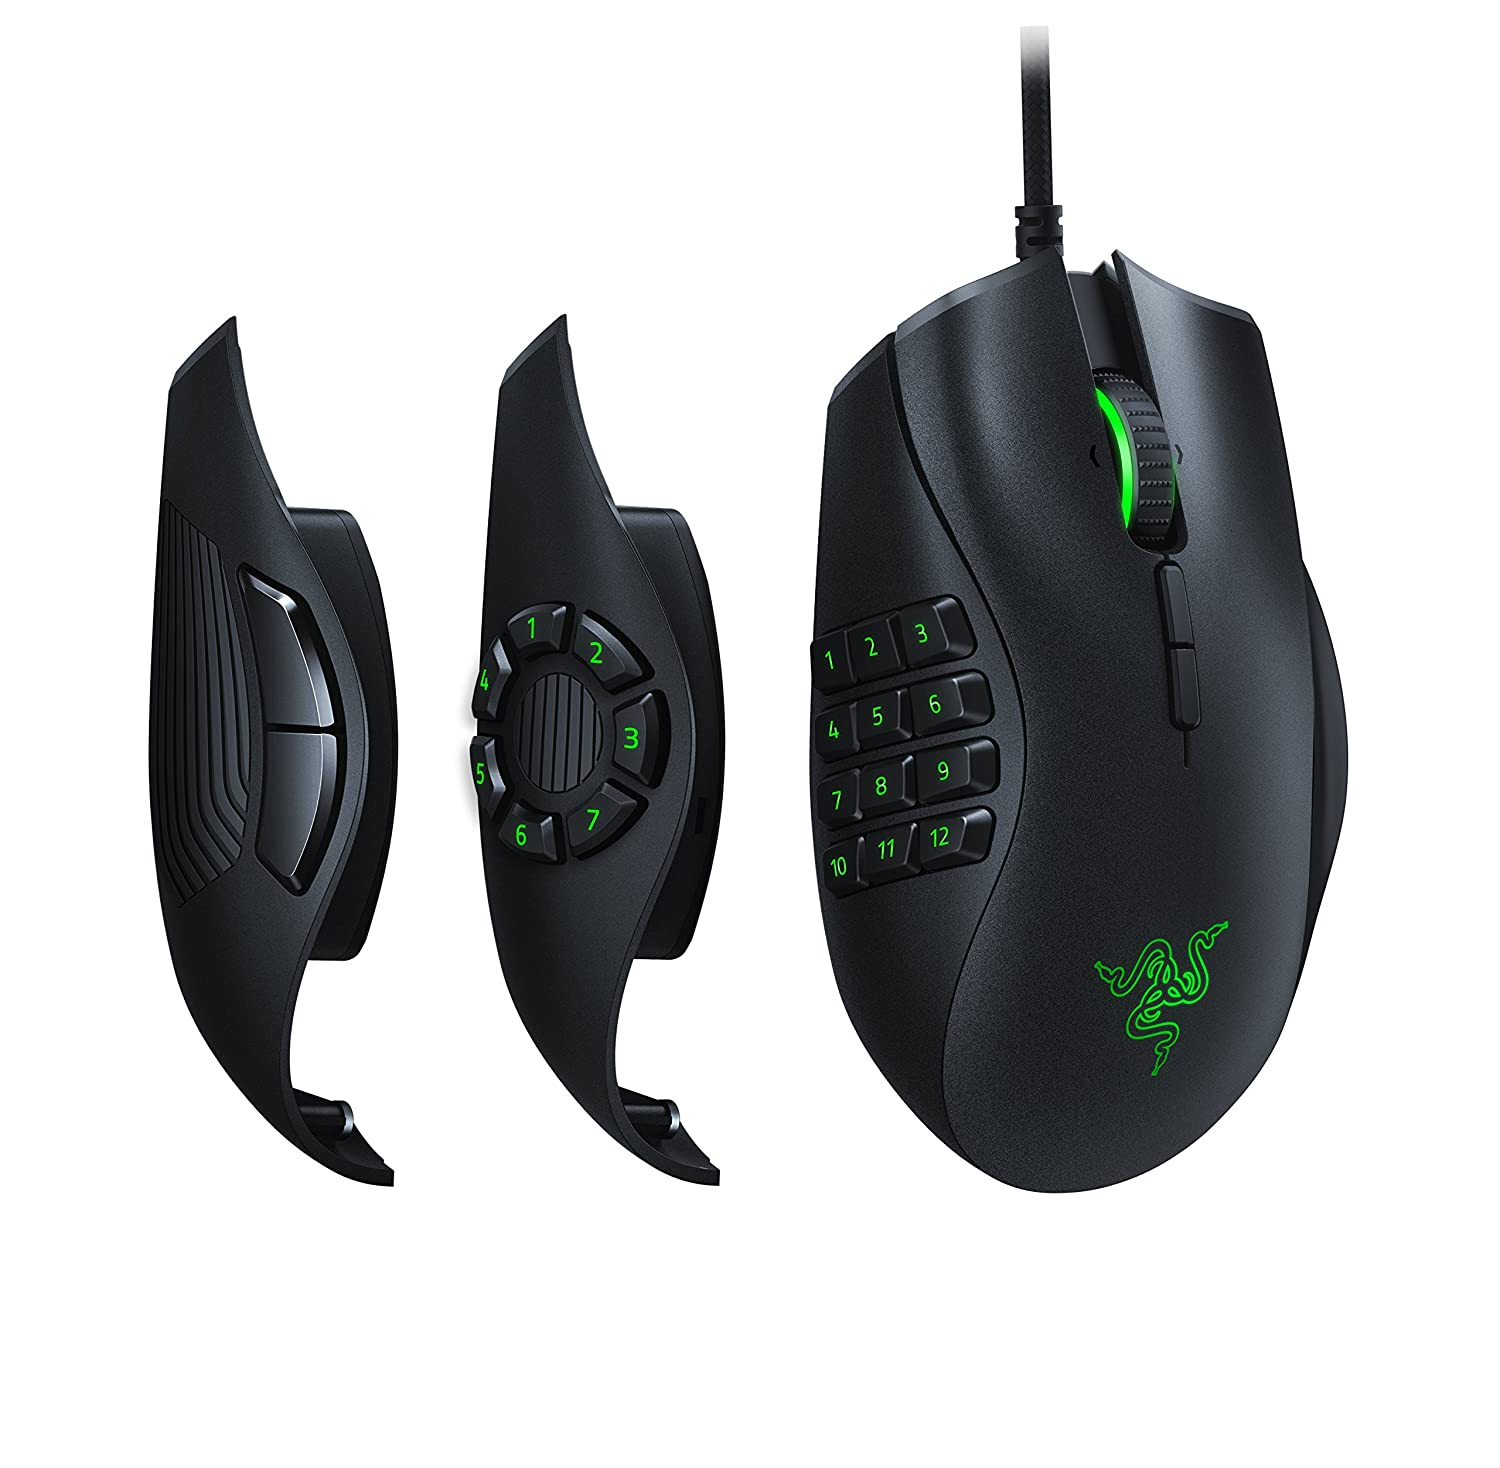 Razer Naga Trinity: True 16,000 5G Optical Sensor - 3 Interchangeable Side Plates - Chroma Enable - Gaming Mouse